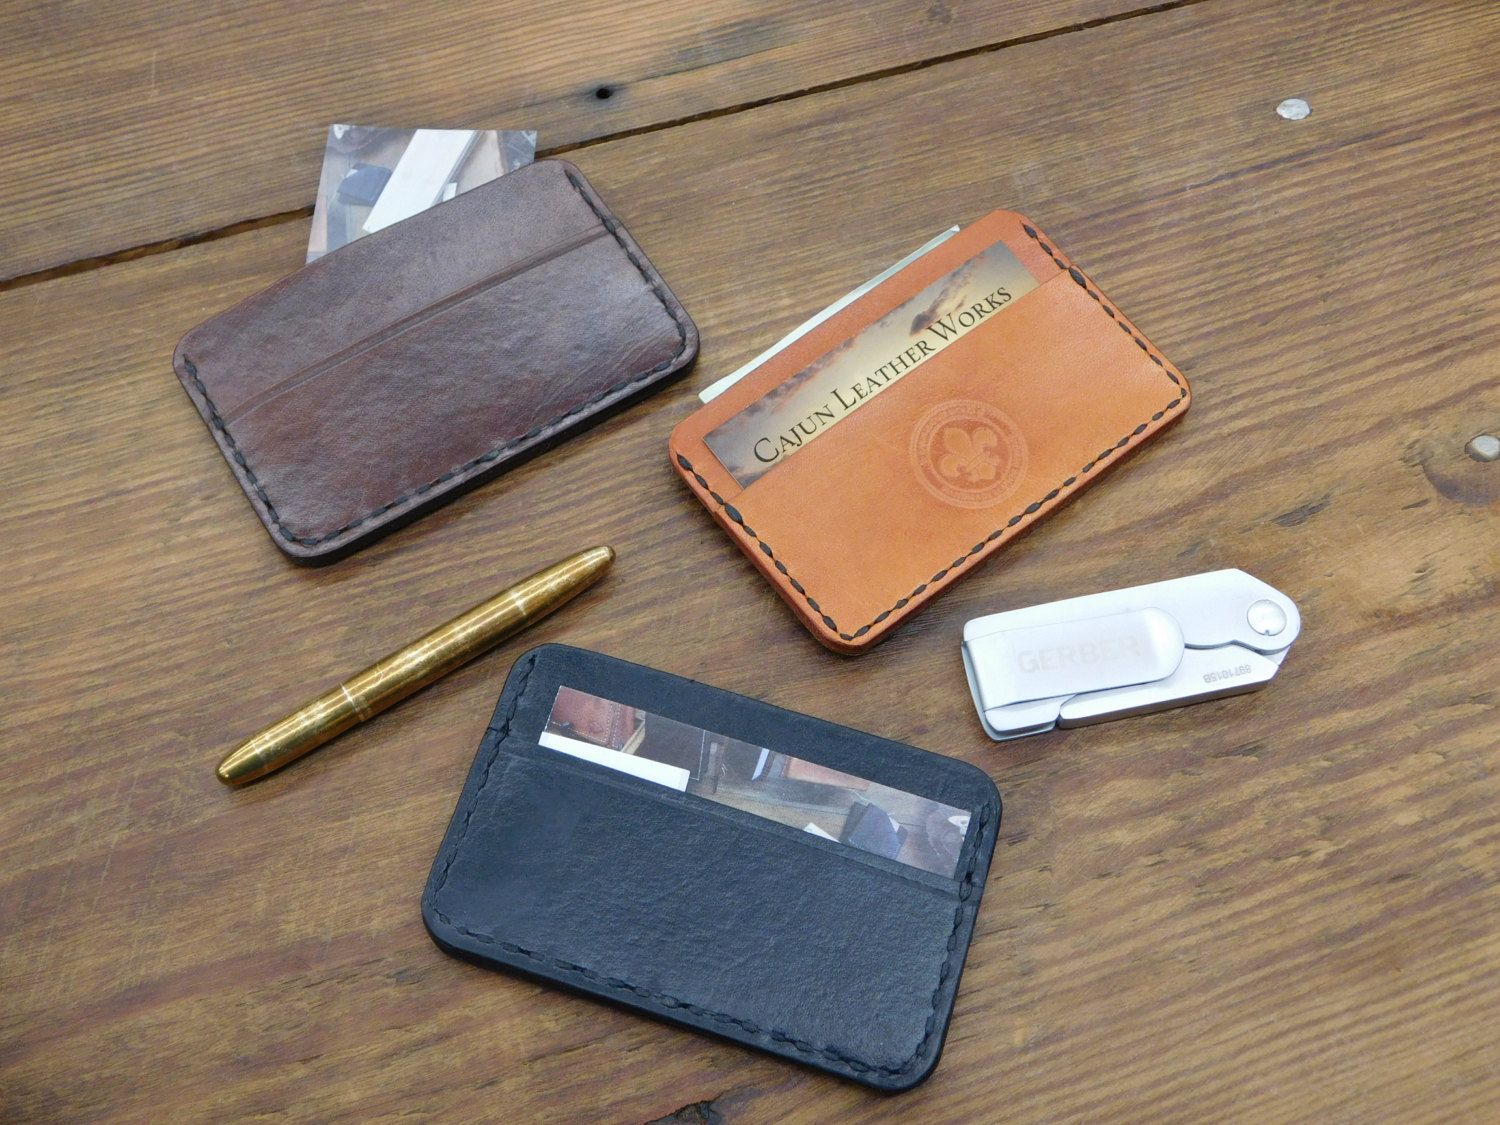 Handmade Custom Cajun Leather Works Minimalist Wallet Or Card Case Color Options Personalized Groomsmen Gift Three Pocket Wallet Made In USA by CajunLeatherWorks on Etsy